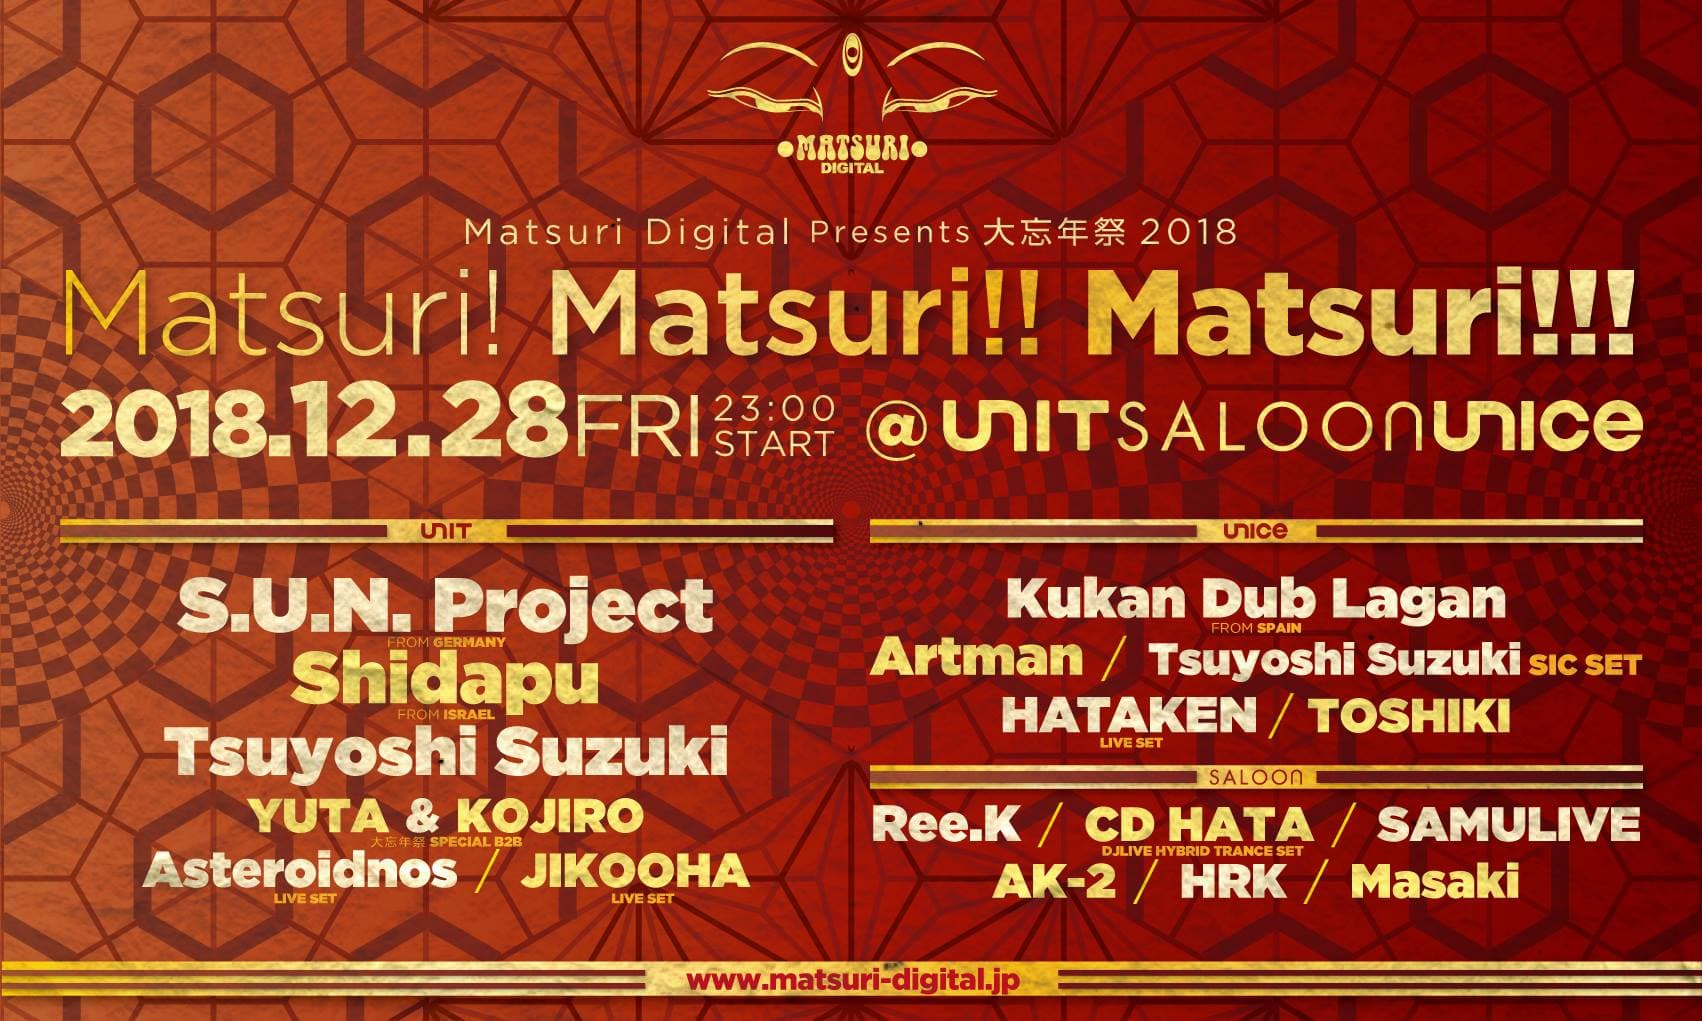 Matsuri Digital presents 大忘年祭2018 - Matsuri! Matsuri! Matsuri!